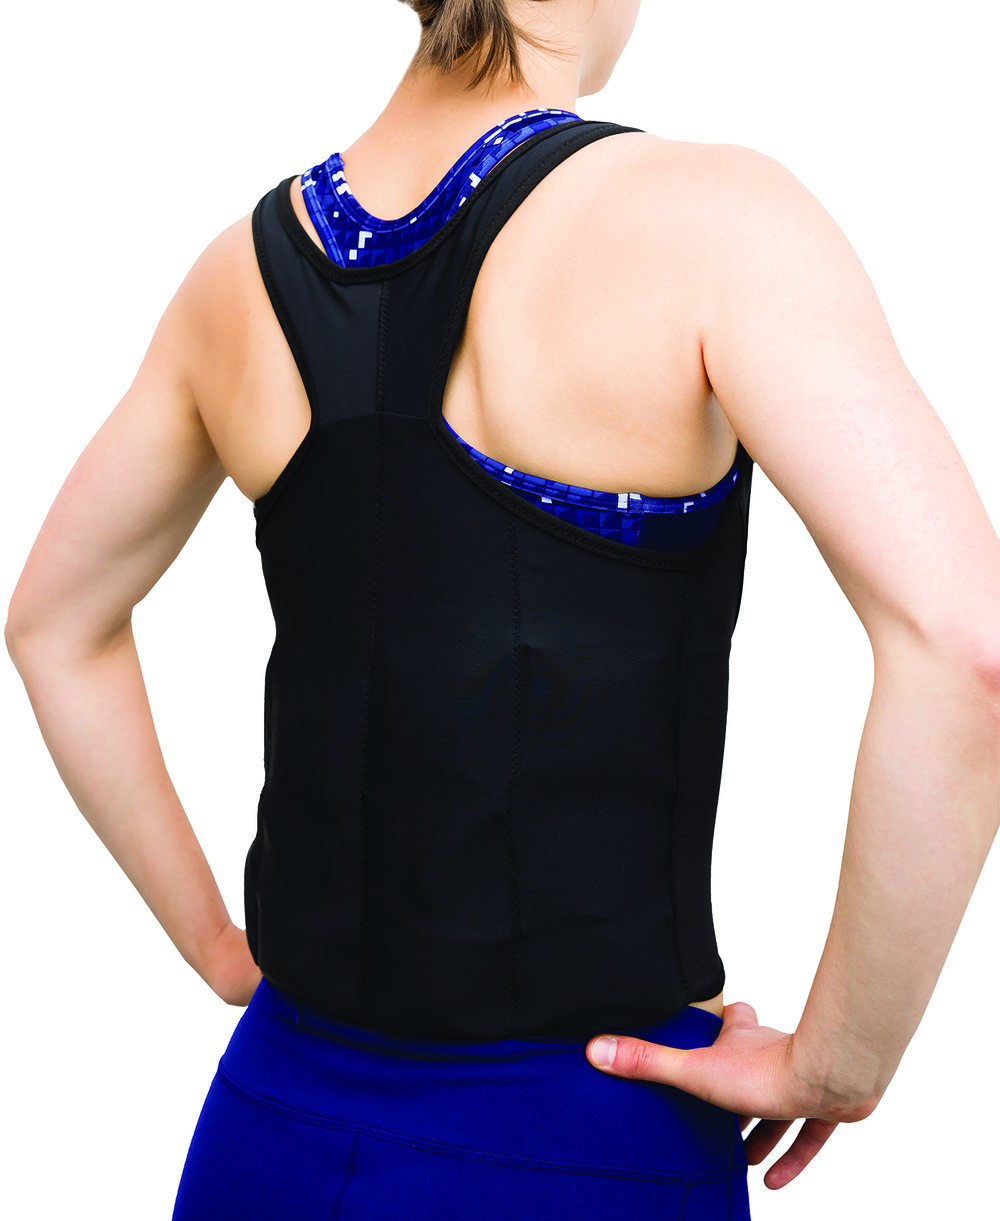 UnderCool Cooling Vest, ThermApparel: $200